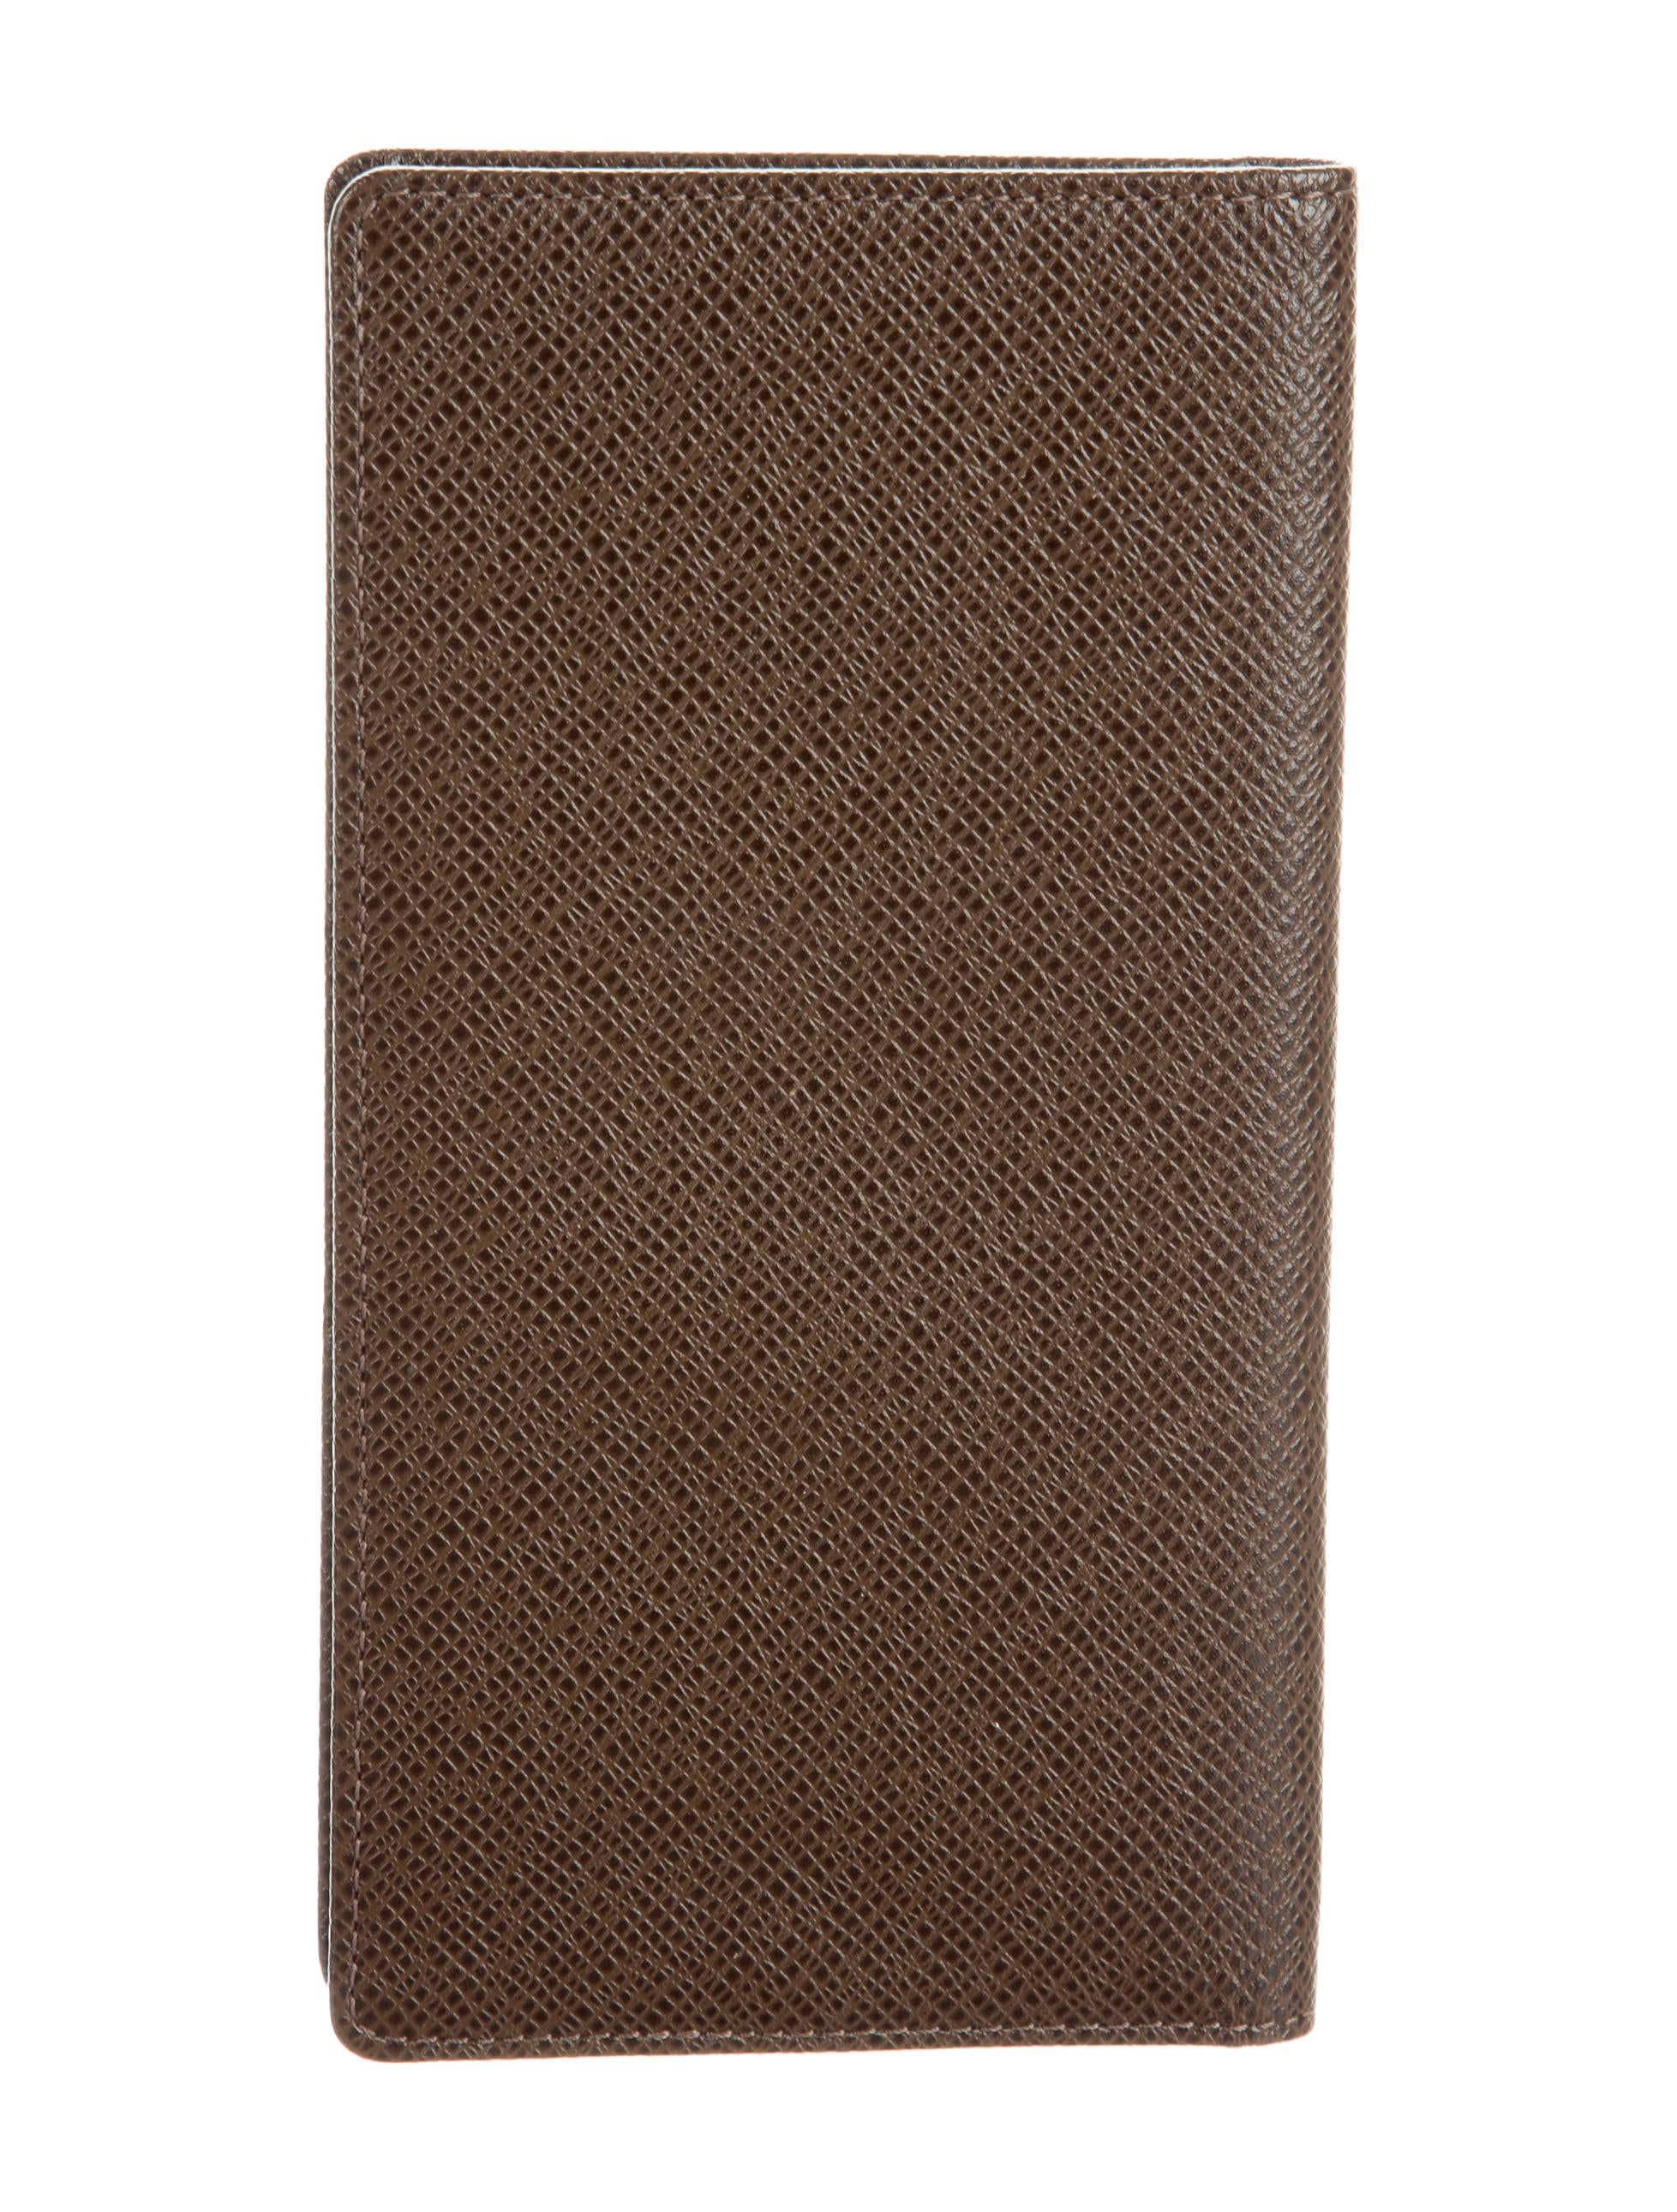 louis vuitton taiga porte chequier cartes travel wallet accessories lou120905 the realreal